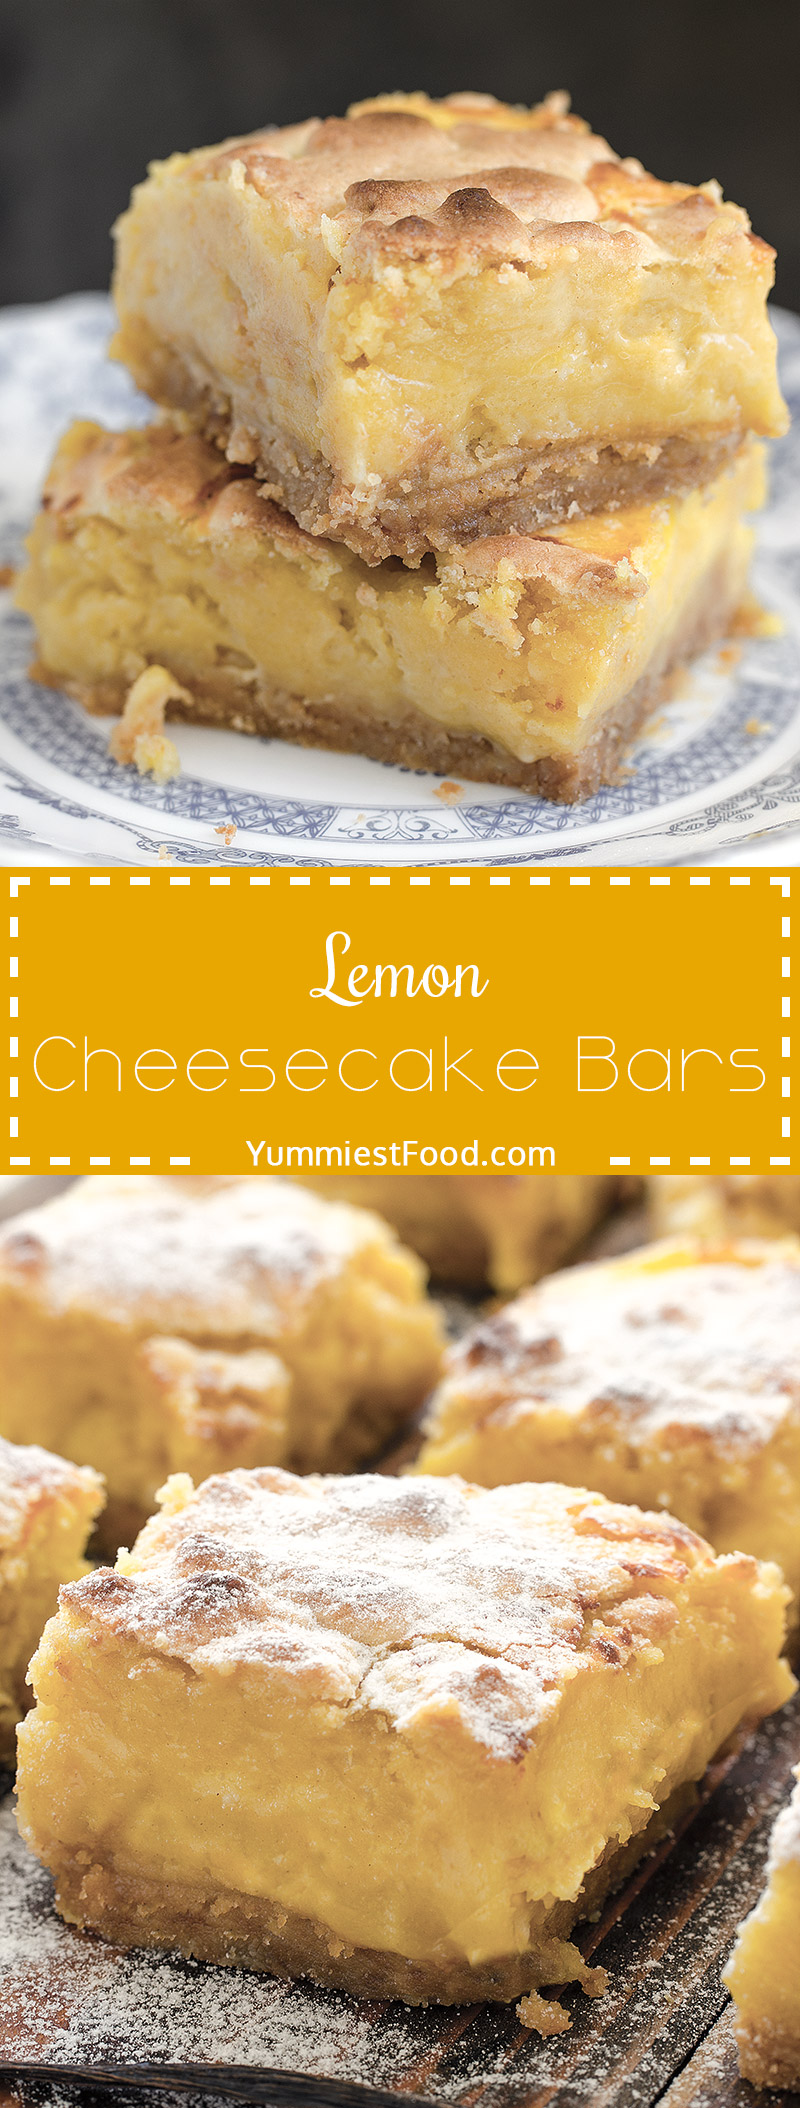 Lemon Cheesecake Bars – creamy, light and refreshing cheesecake bars with lemon juice